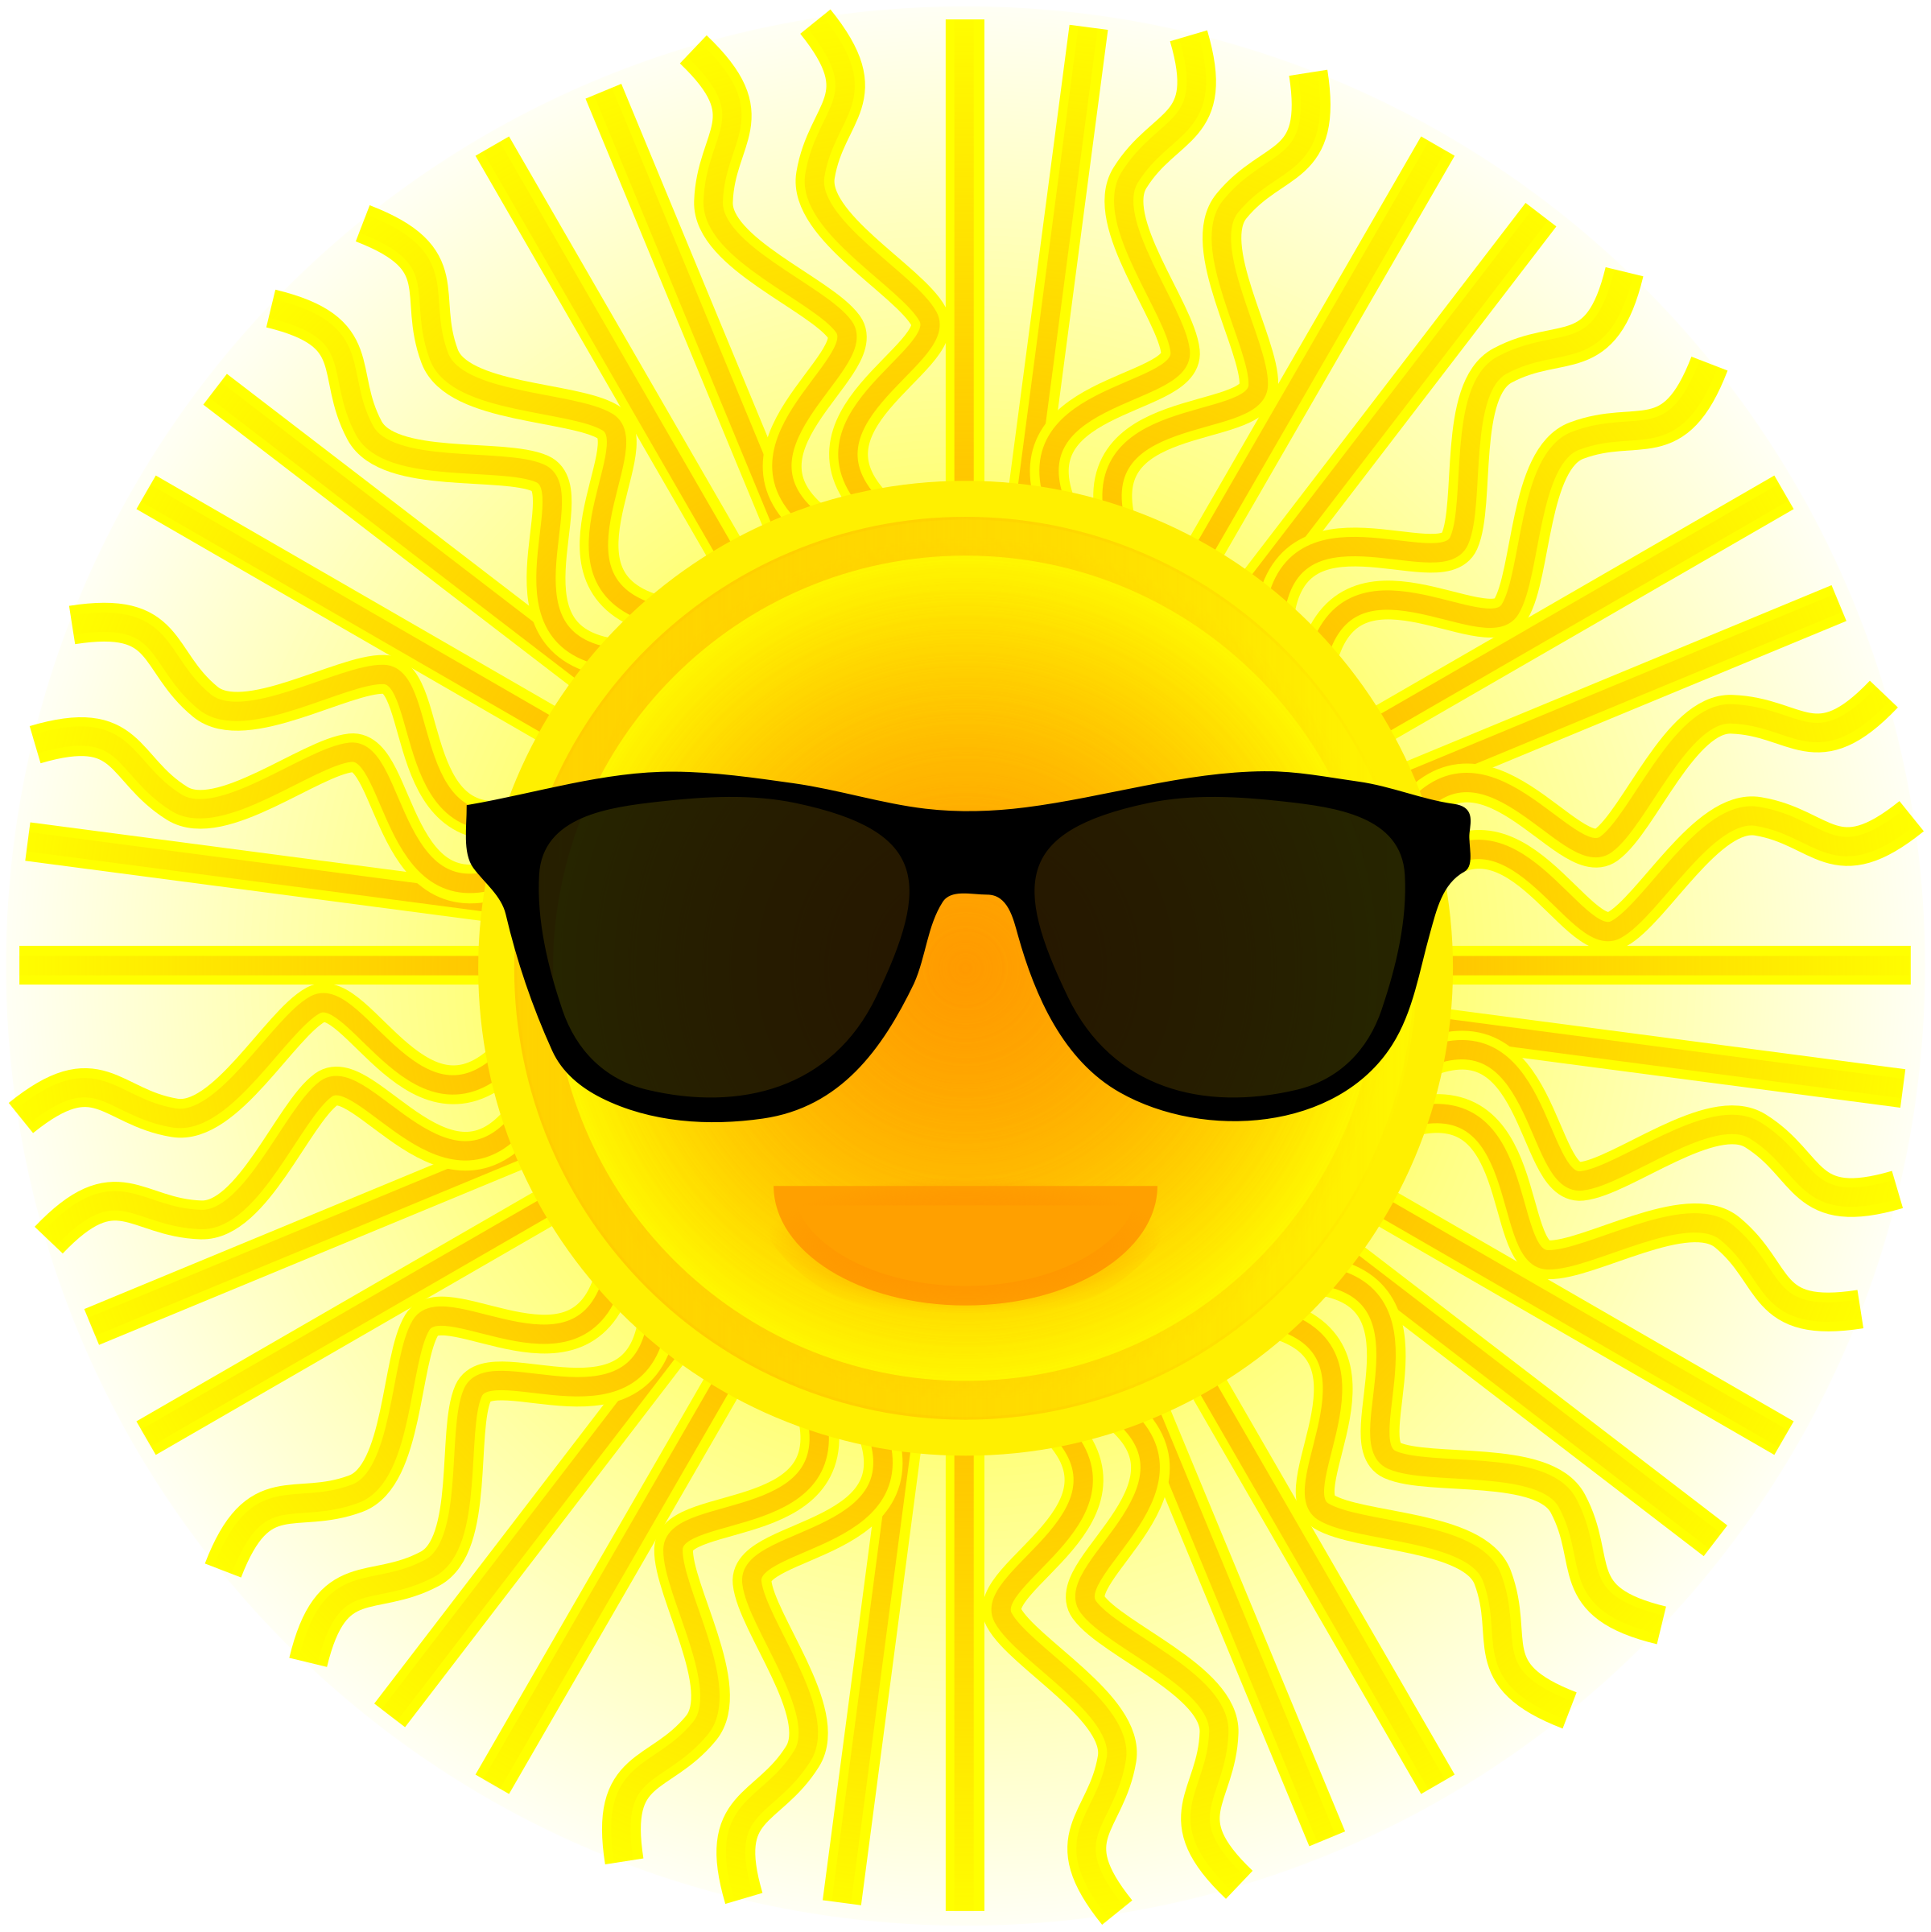 Sun with sunglasses file sun wearing sunglasses svg mediamons.